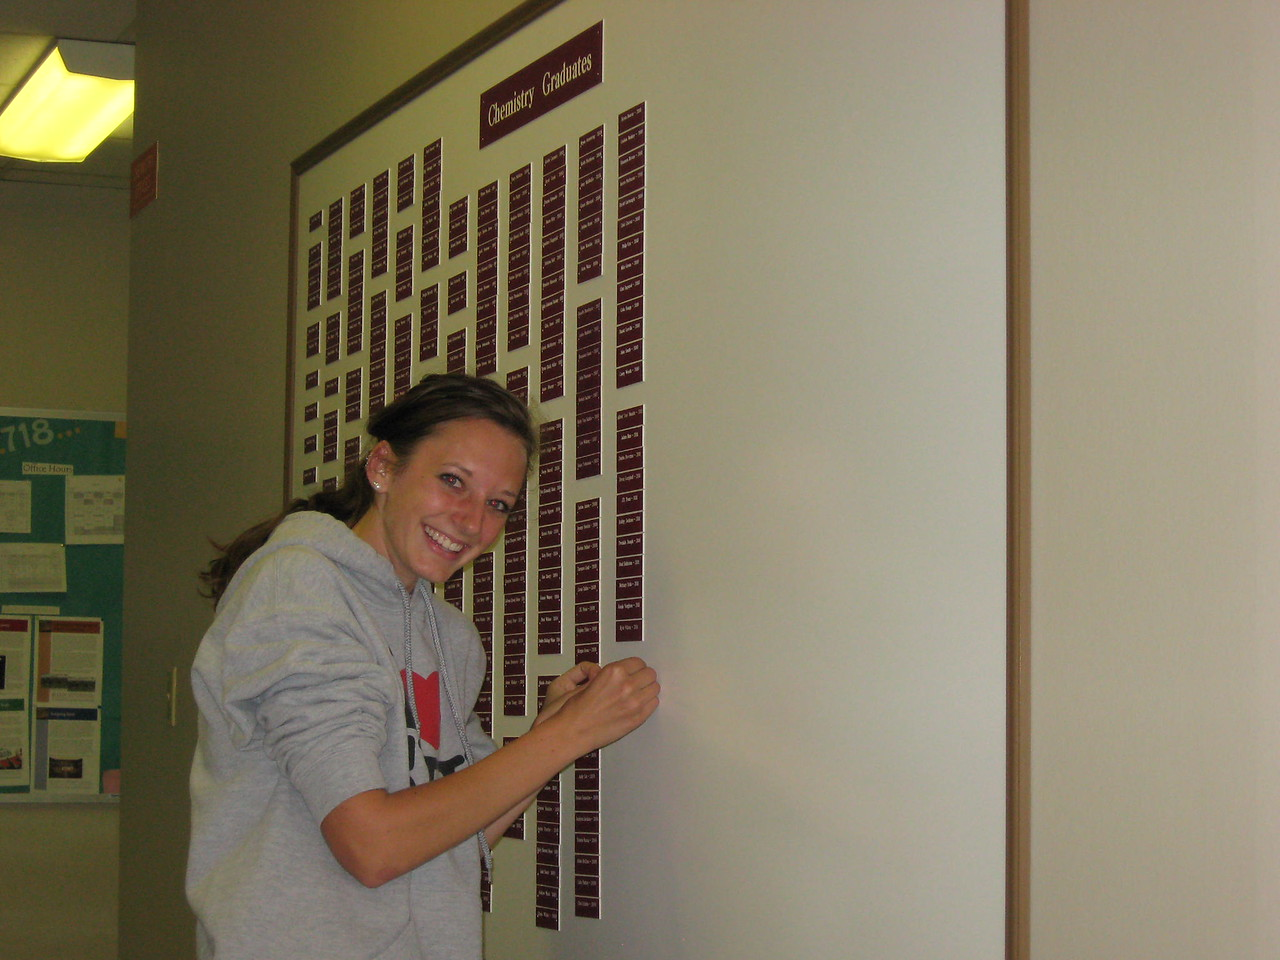 Chesney Burgweger putting her nameplate on the Chemistry Graduates board.